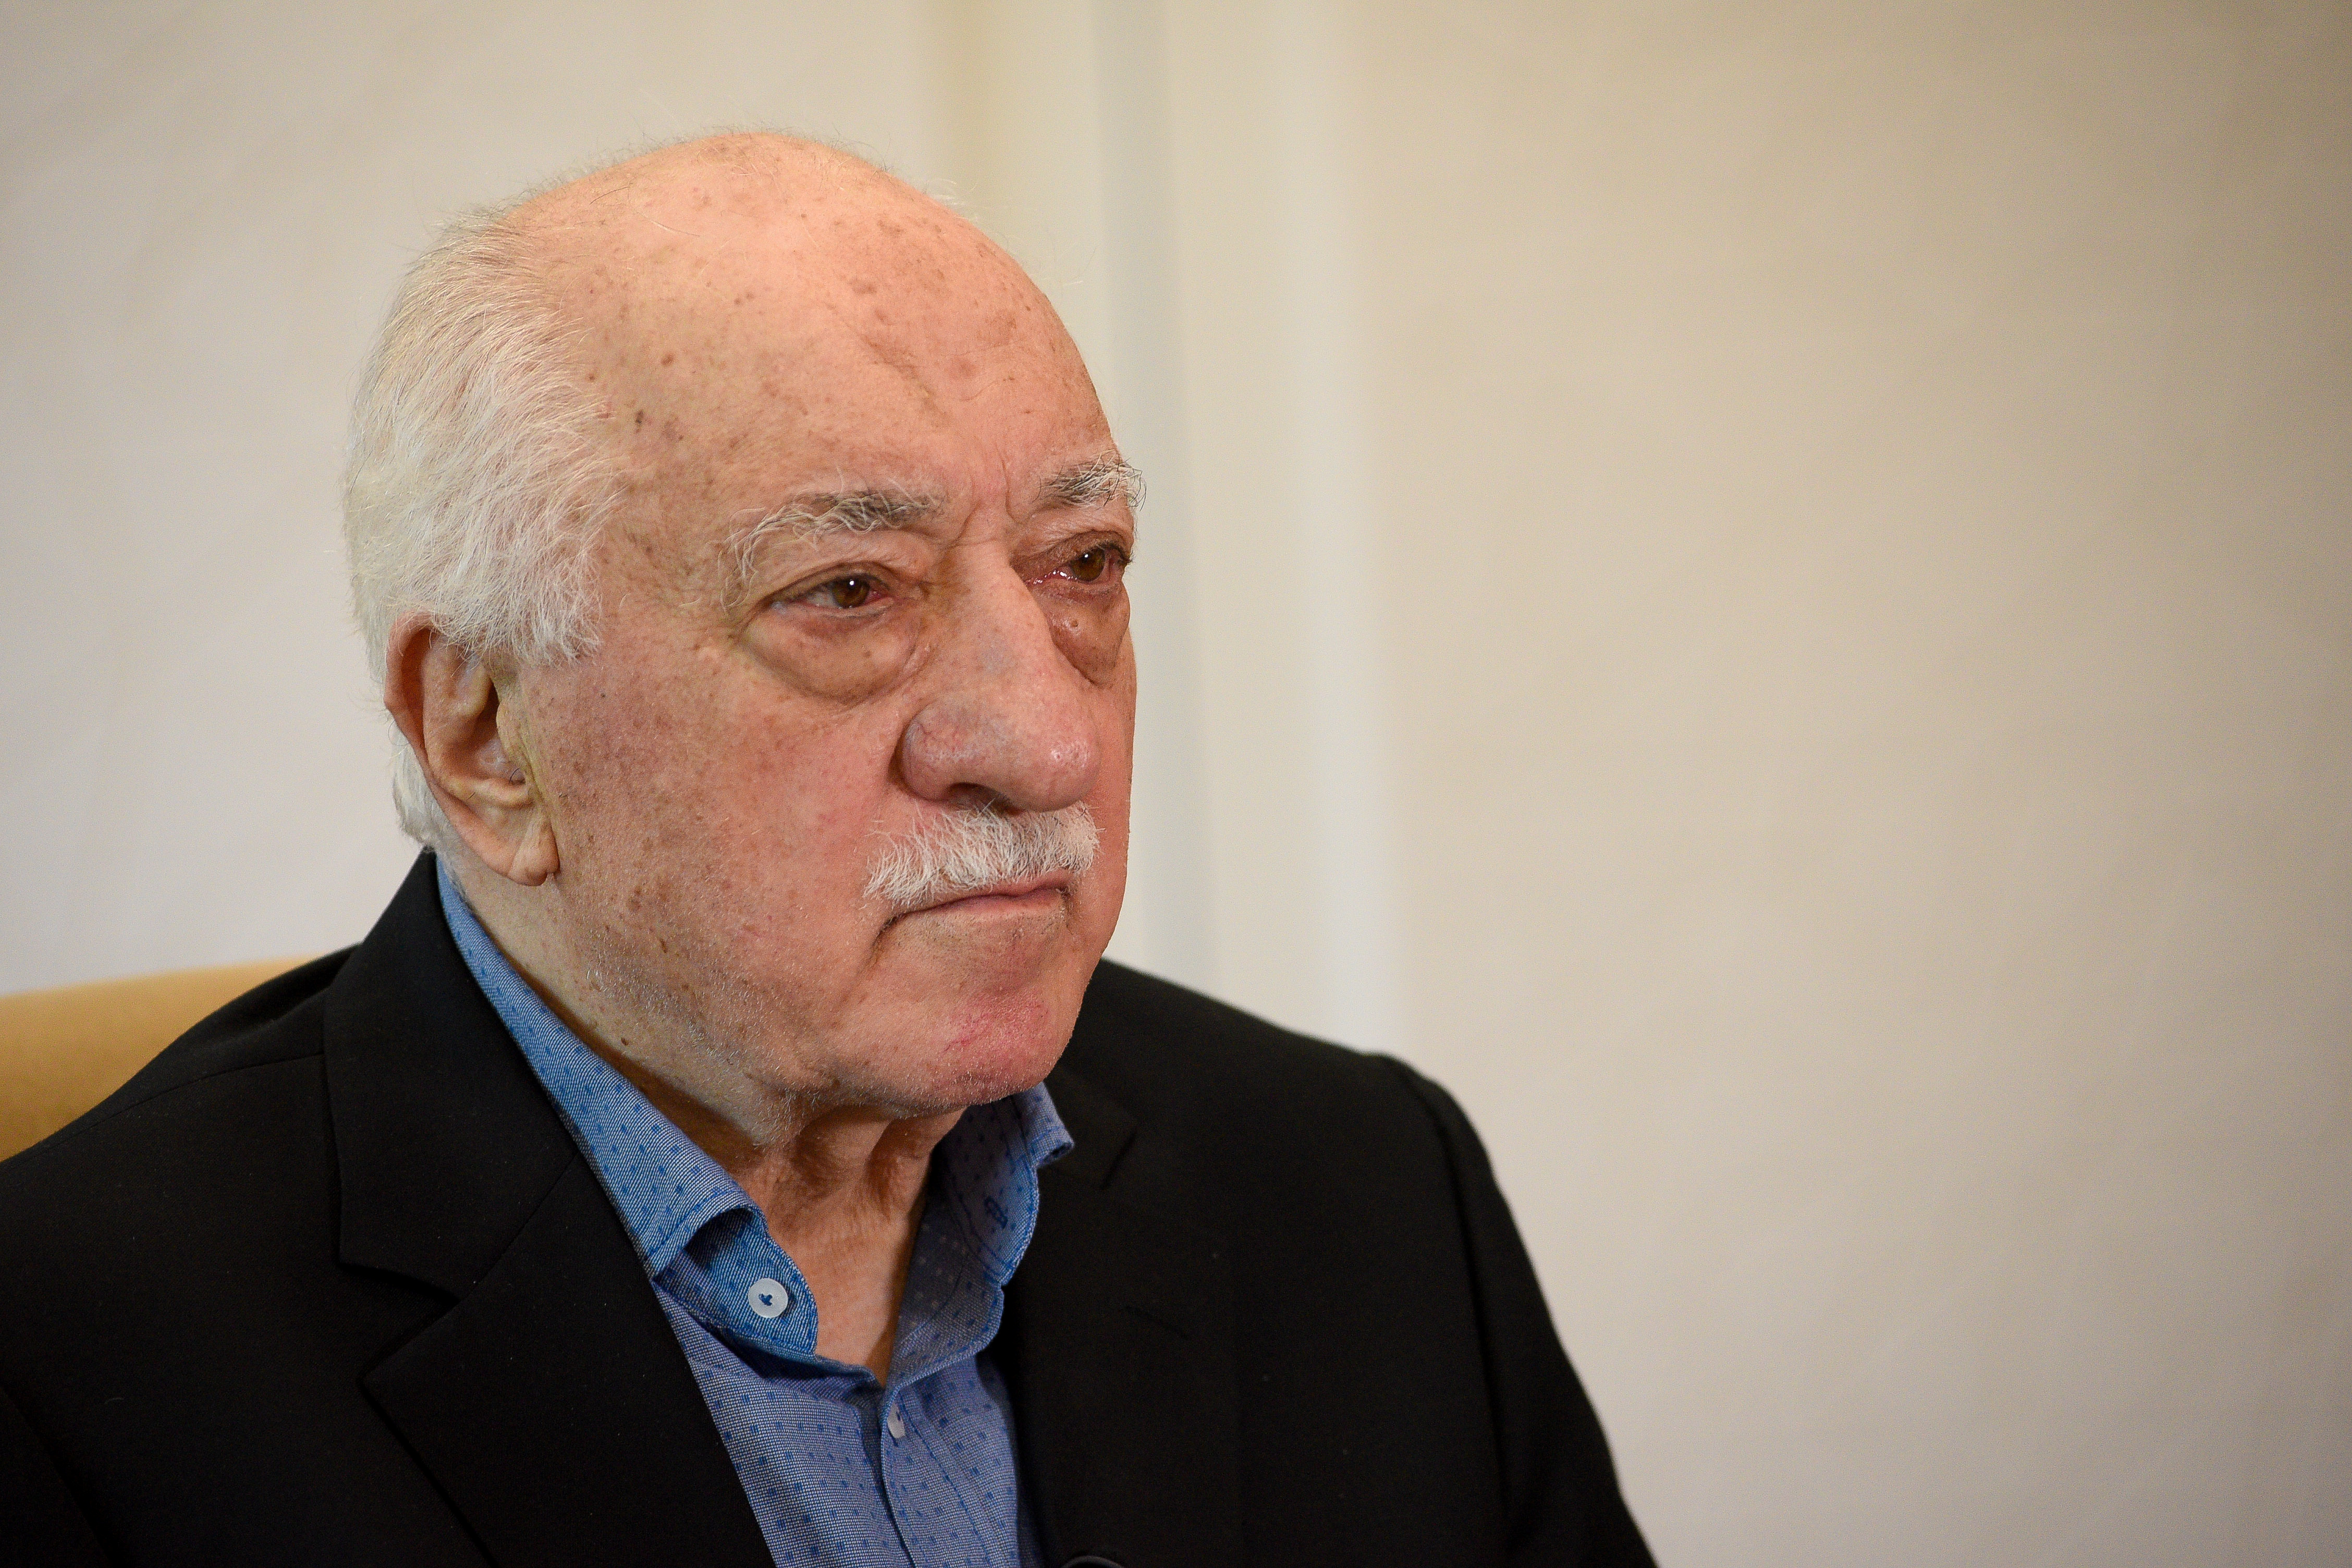 U.S.-based Turkish cleric Fethullah Gulen at his home in Saylorsburg, Pennsylvania, U.S. July 10, 2017. REUTERS/Charles Mostoller